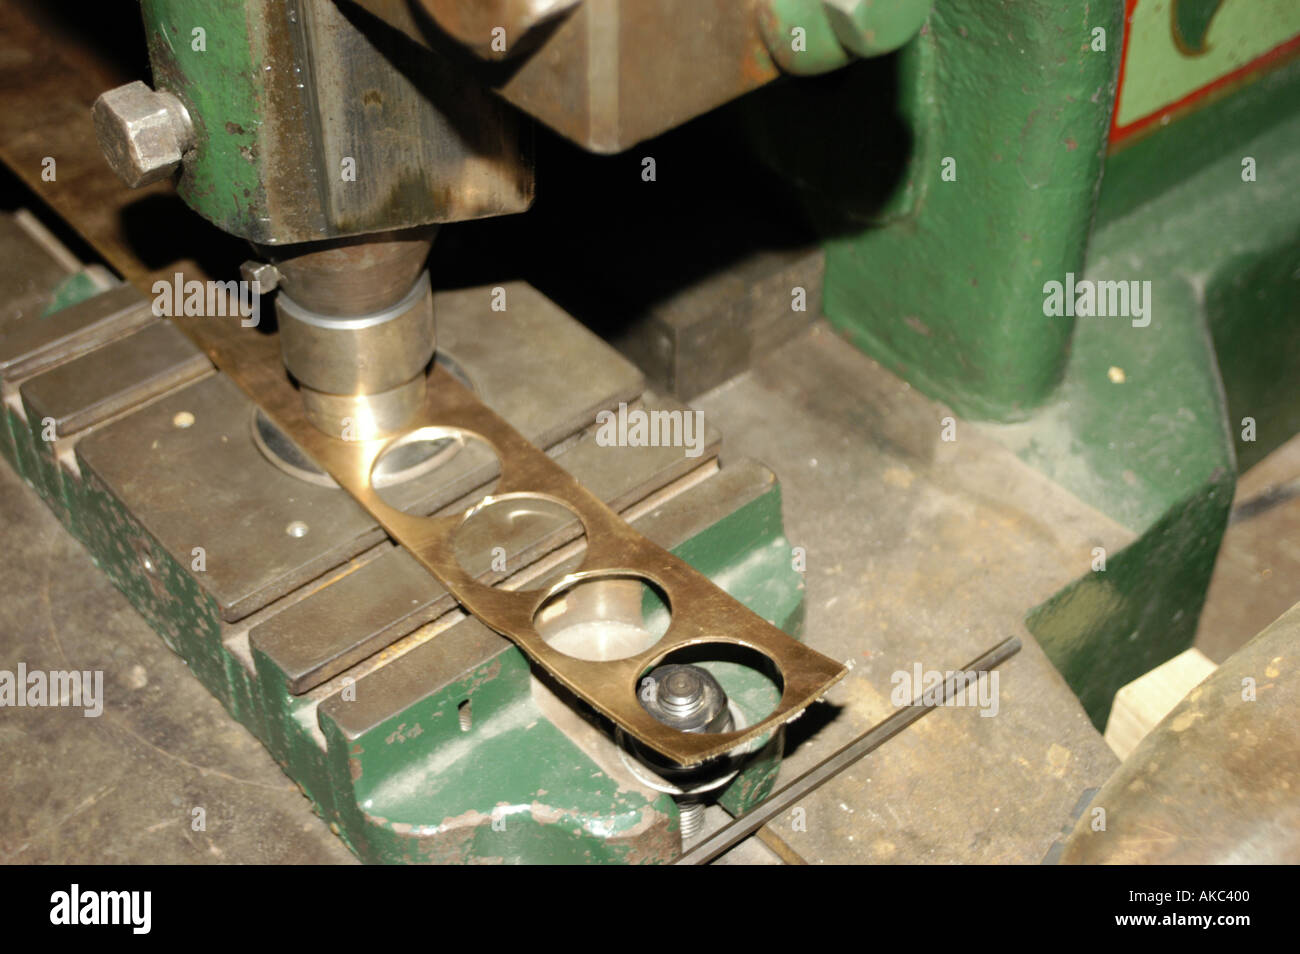 Closeup of old punch press making coin blanks Stock Photo: 1295359